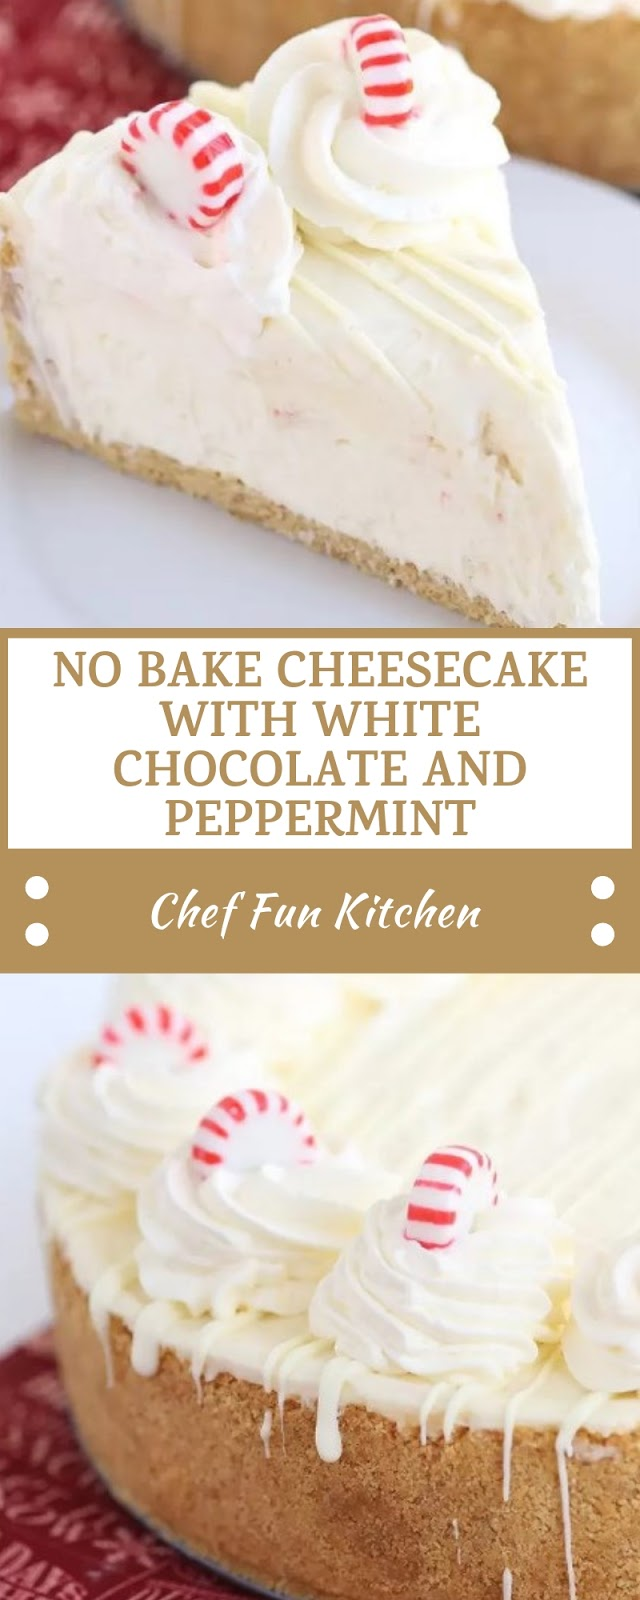 NO BAKE CHEESECAKE WITH WHITE CHOCOLATE AND PEPPERMINT